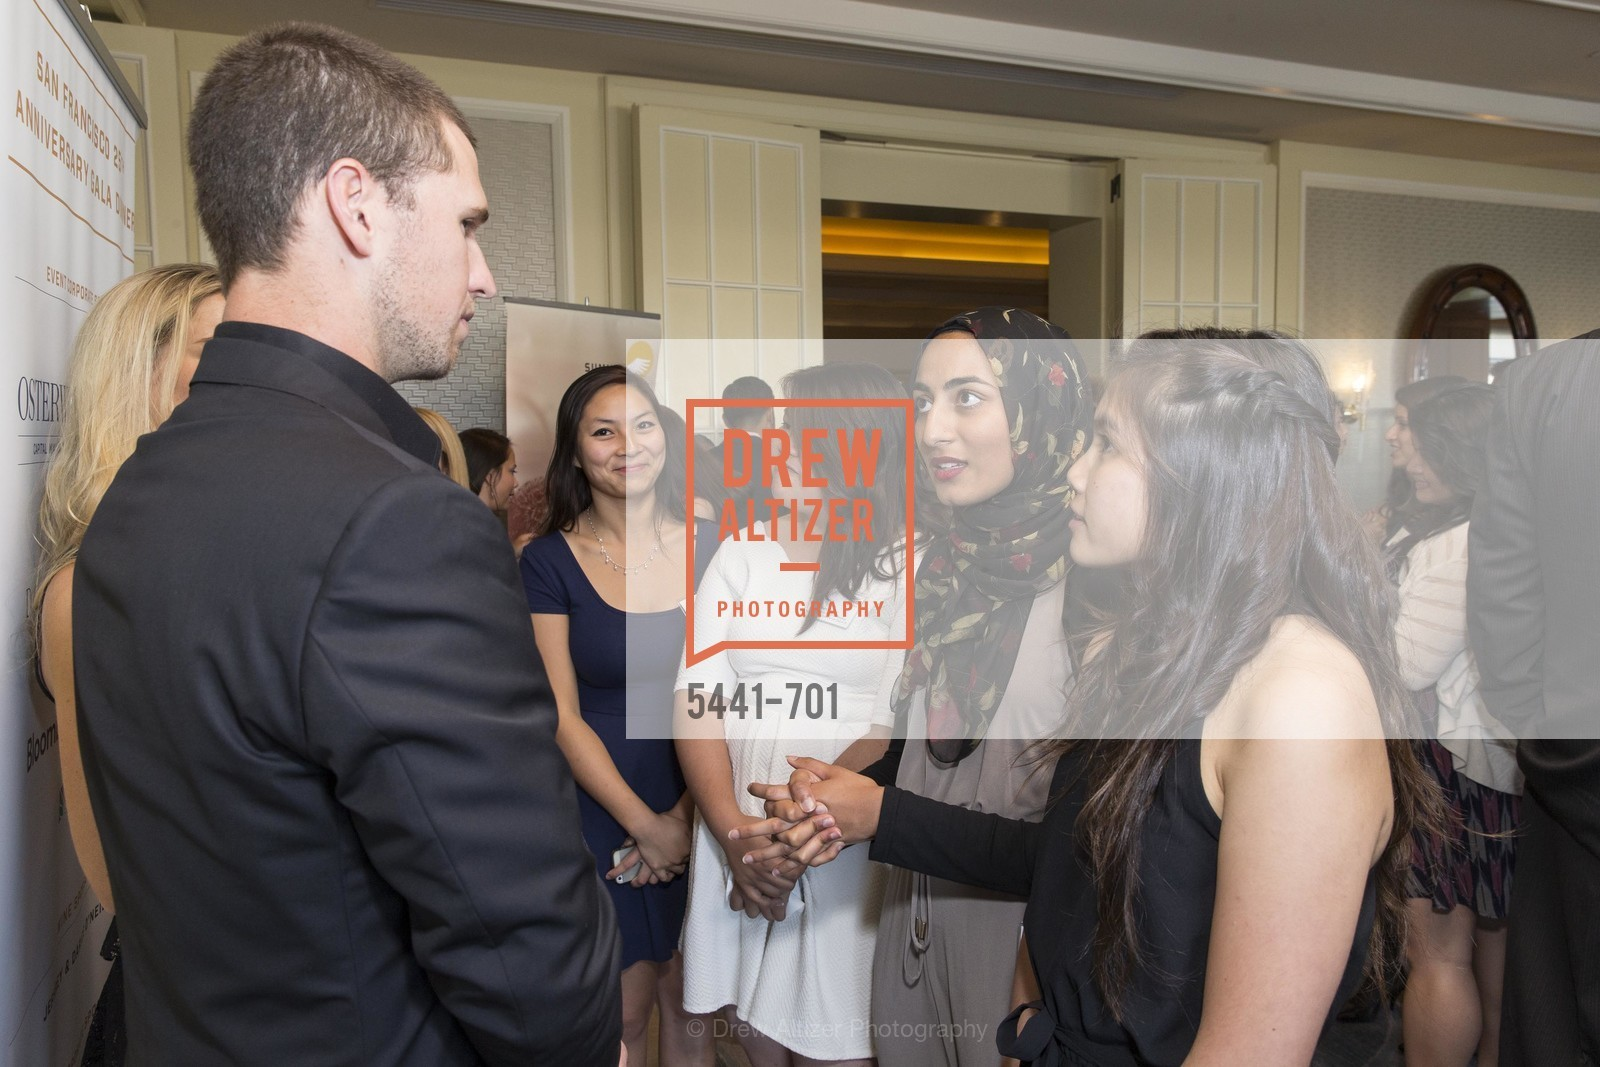 Buster Posey, Muriam Choudhery, SUMMER SEARCH San Francisco 25th Anniversary, US, May 7th, 2015,Drew Altizer, Drew Altizer Photography, full-service agency, private events, San Francisco photographer, photographer california